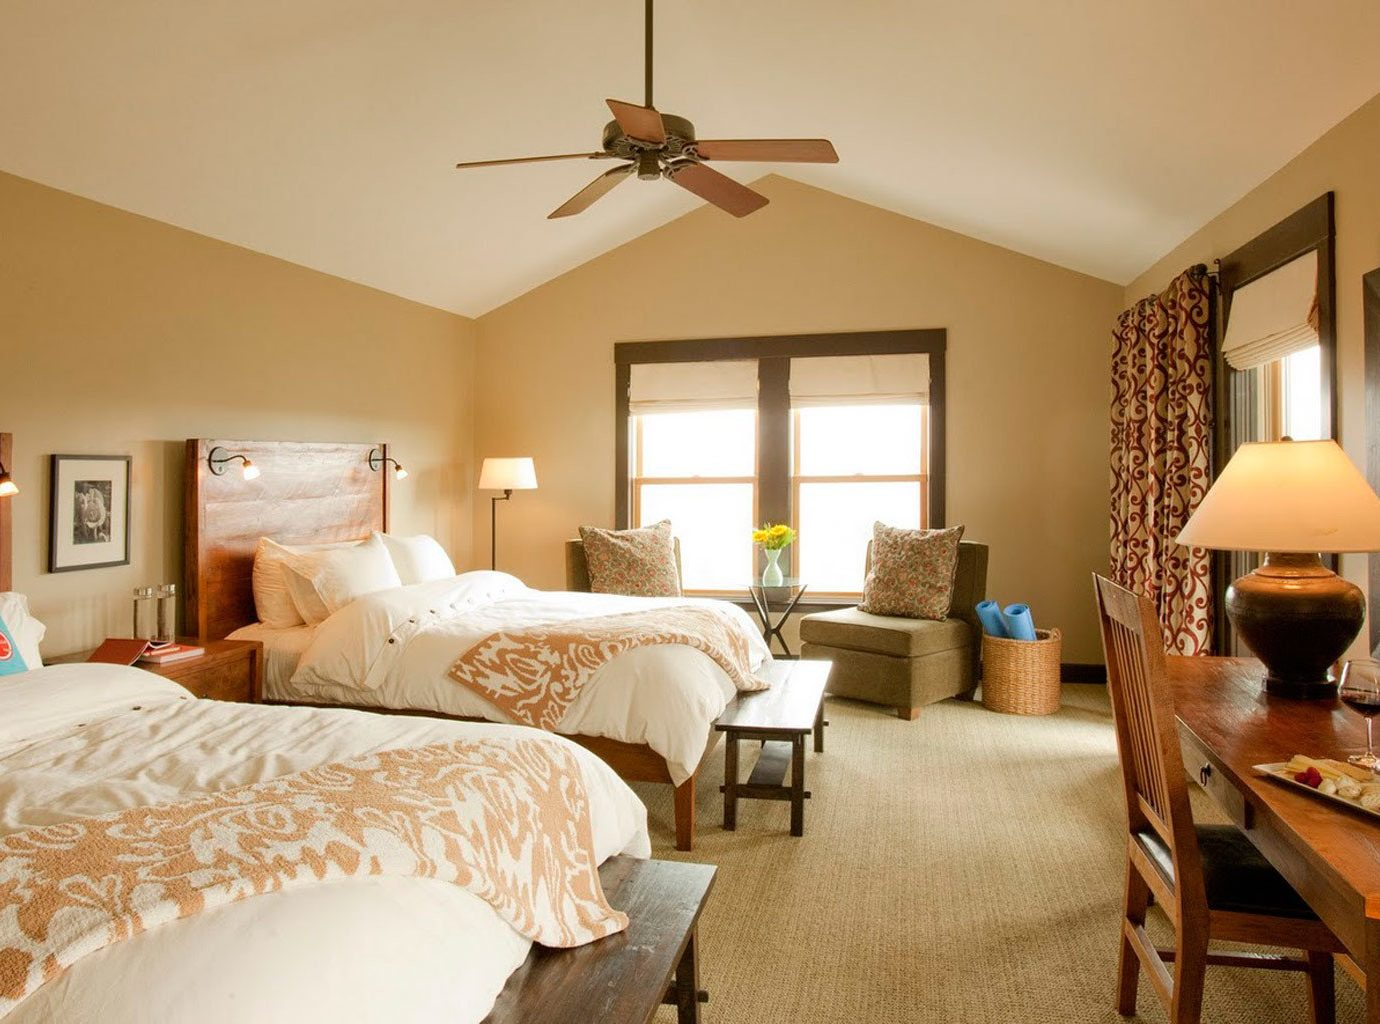 All-Inclusive Resorts Bedroom Cultural Grounds Hotels Resort Romance Rustic Wellness indoor wall bed room floor ceiling property hotel estate cottage home living room hardwood farmhouse real estate interior design Suite Villa furniture area